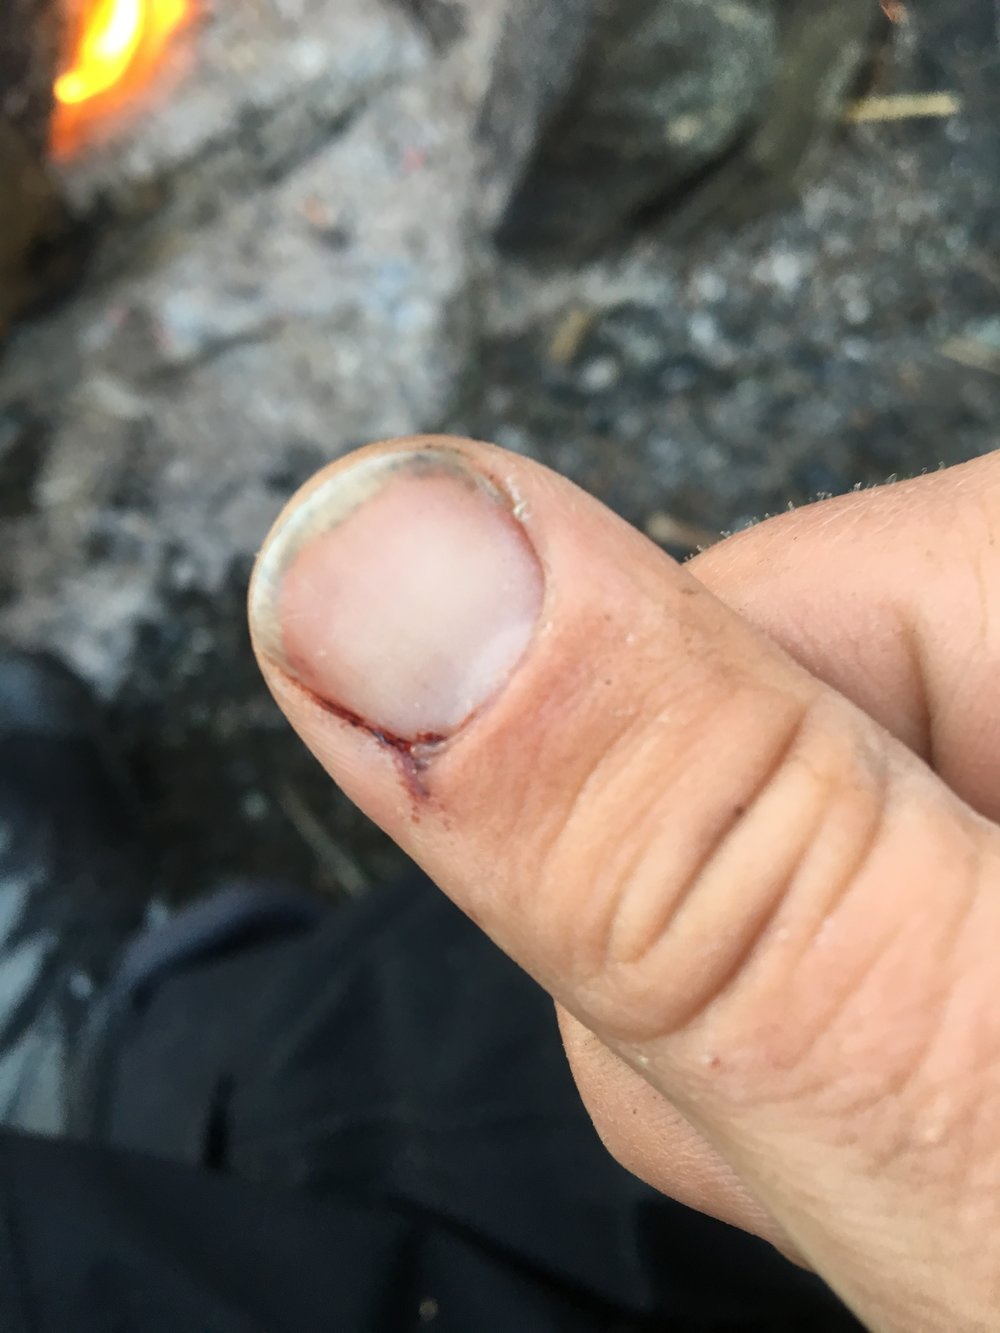 The result of getting a hook stuck in my thumb, again.